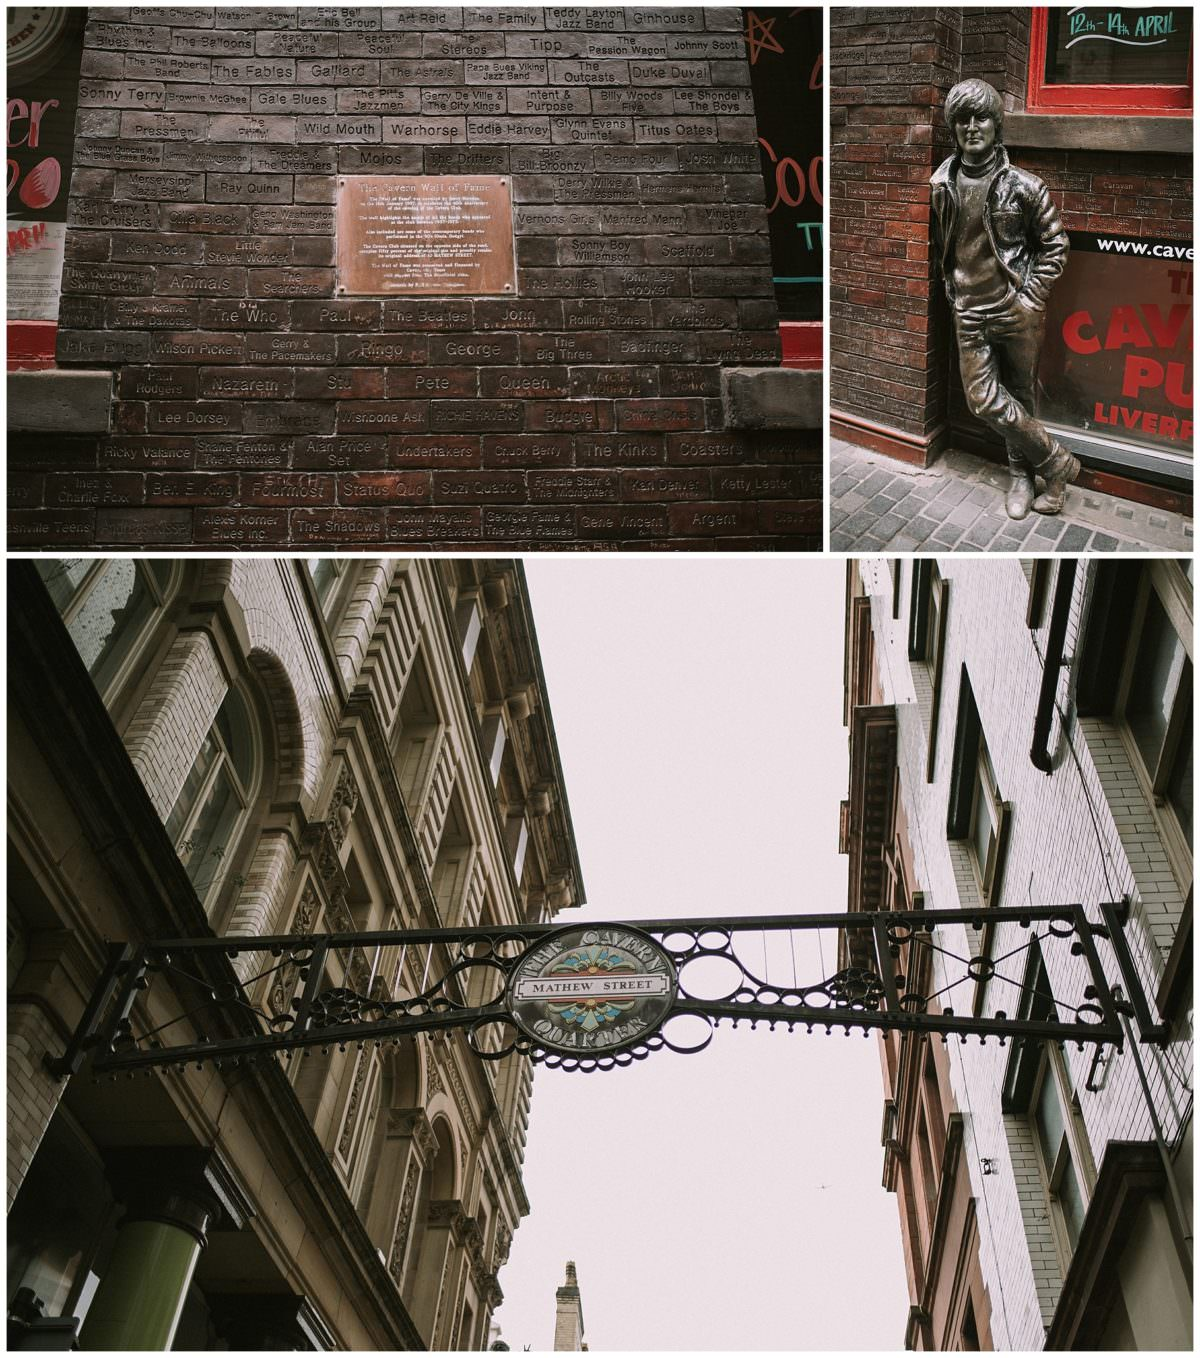 The Cavern Club and the Wall of fame, Liverpool